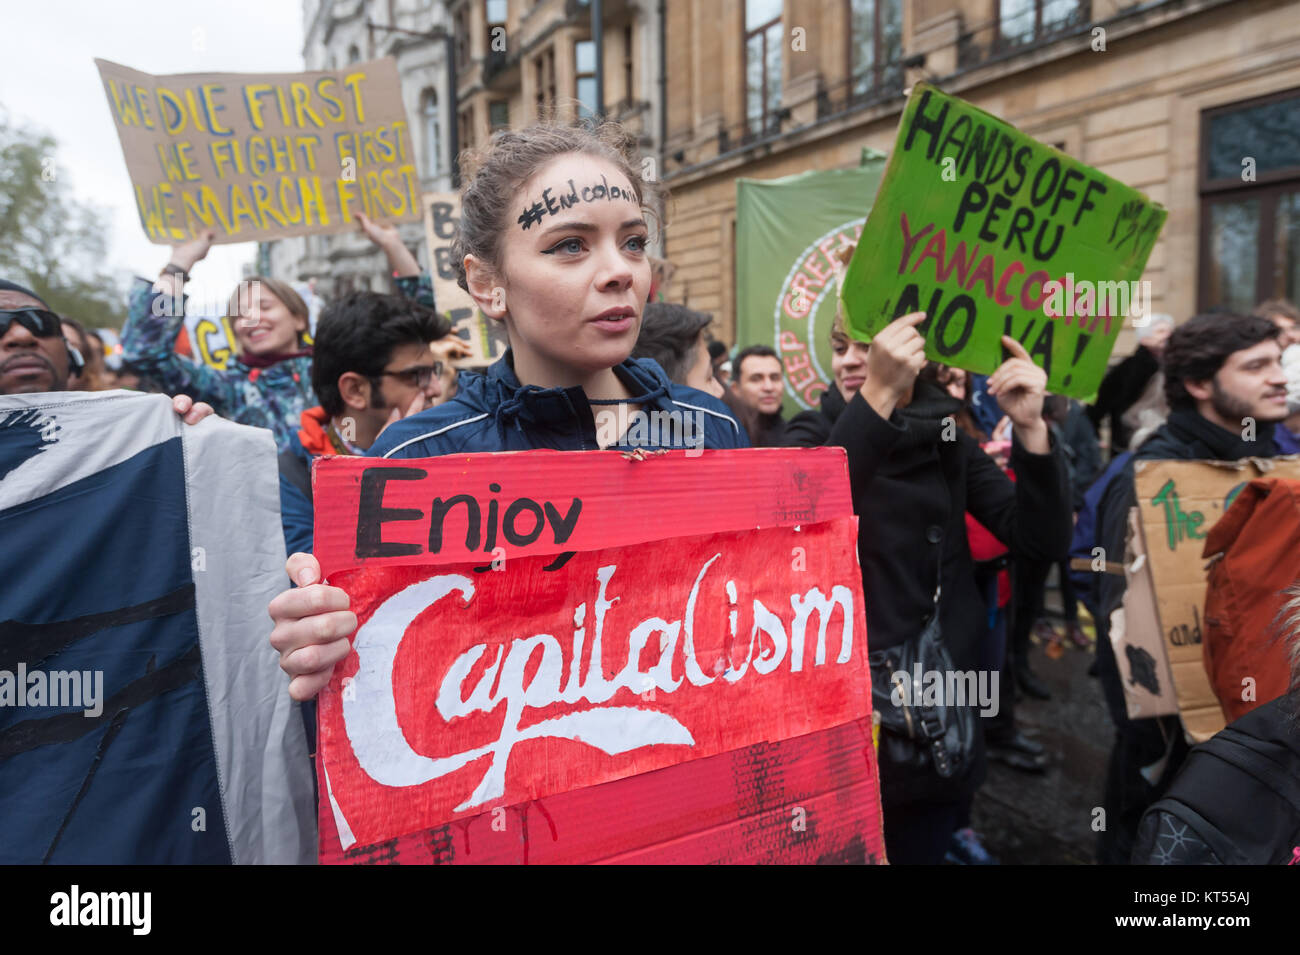 A woman with the hashtag #Endcolonialism across her forehead carries a poster 'Enjoy Capitalism - It Kills' - Stock Image